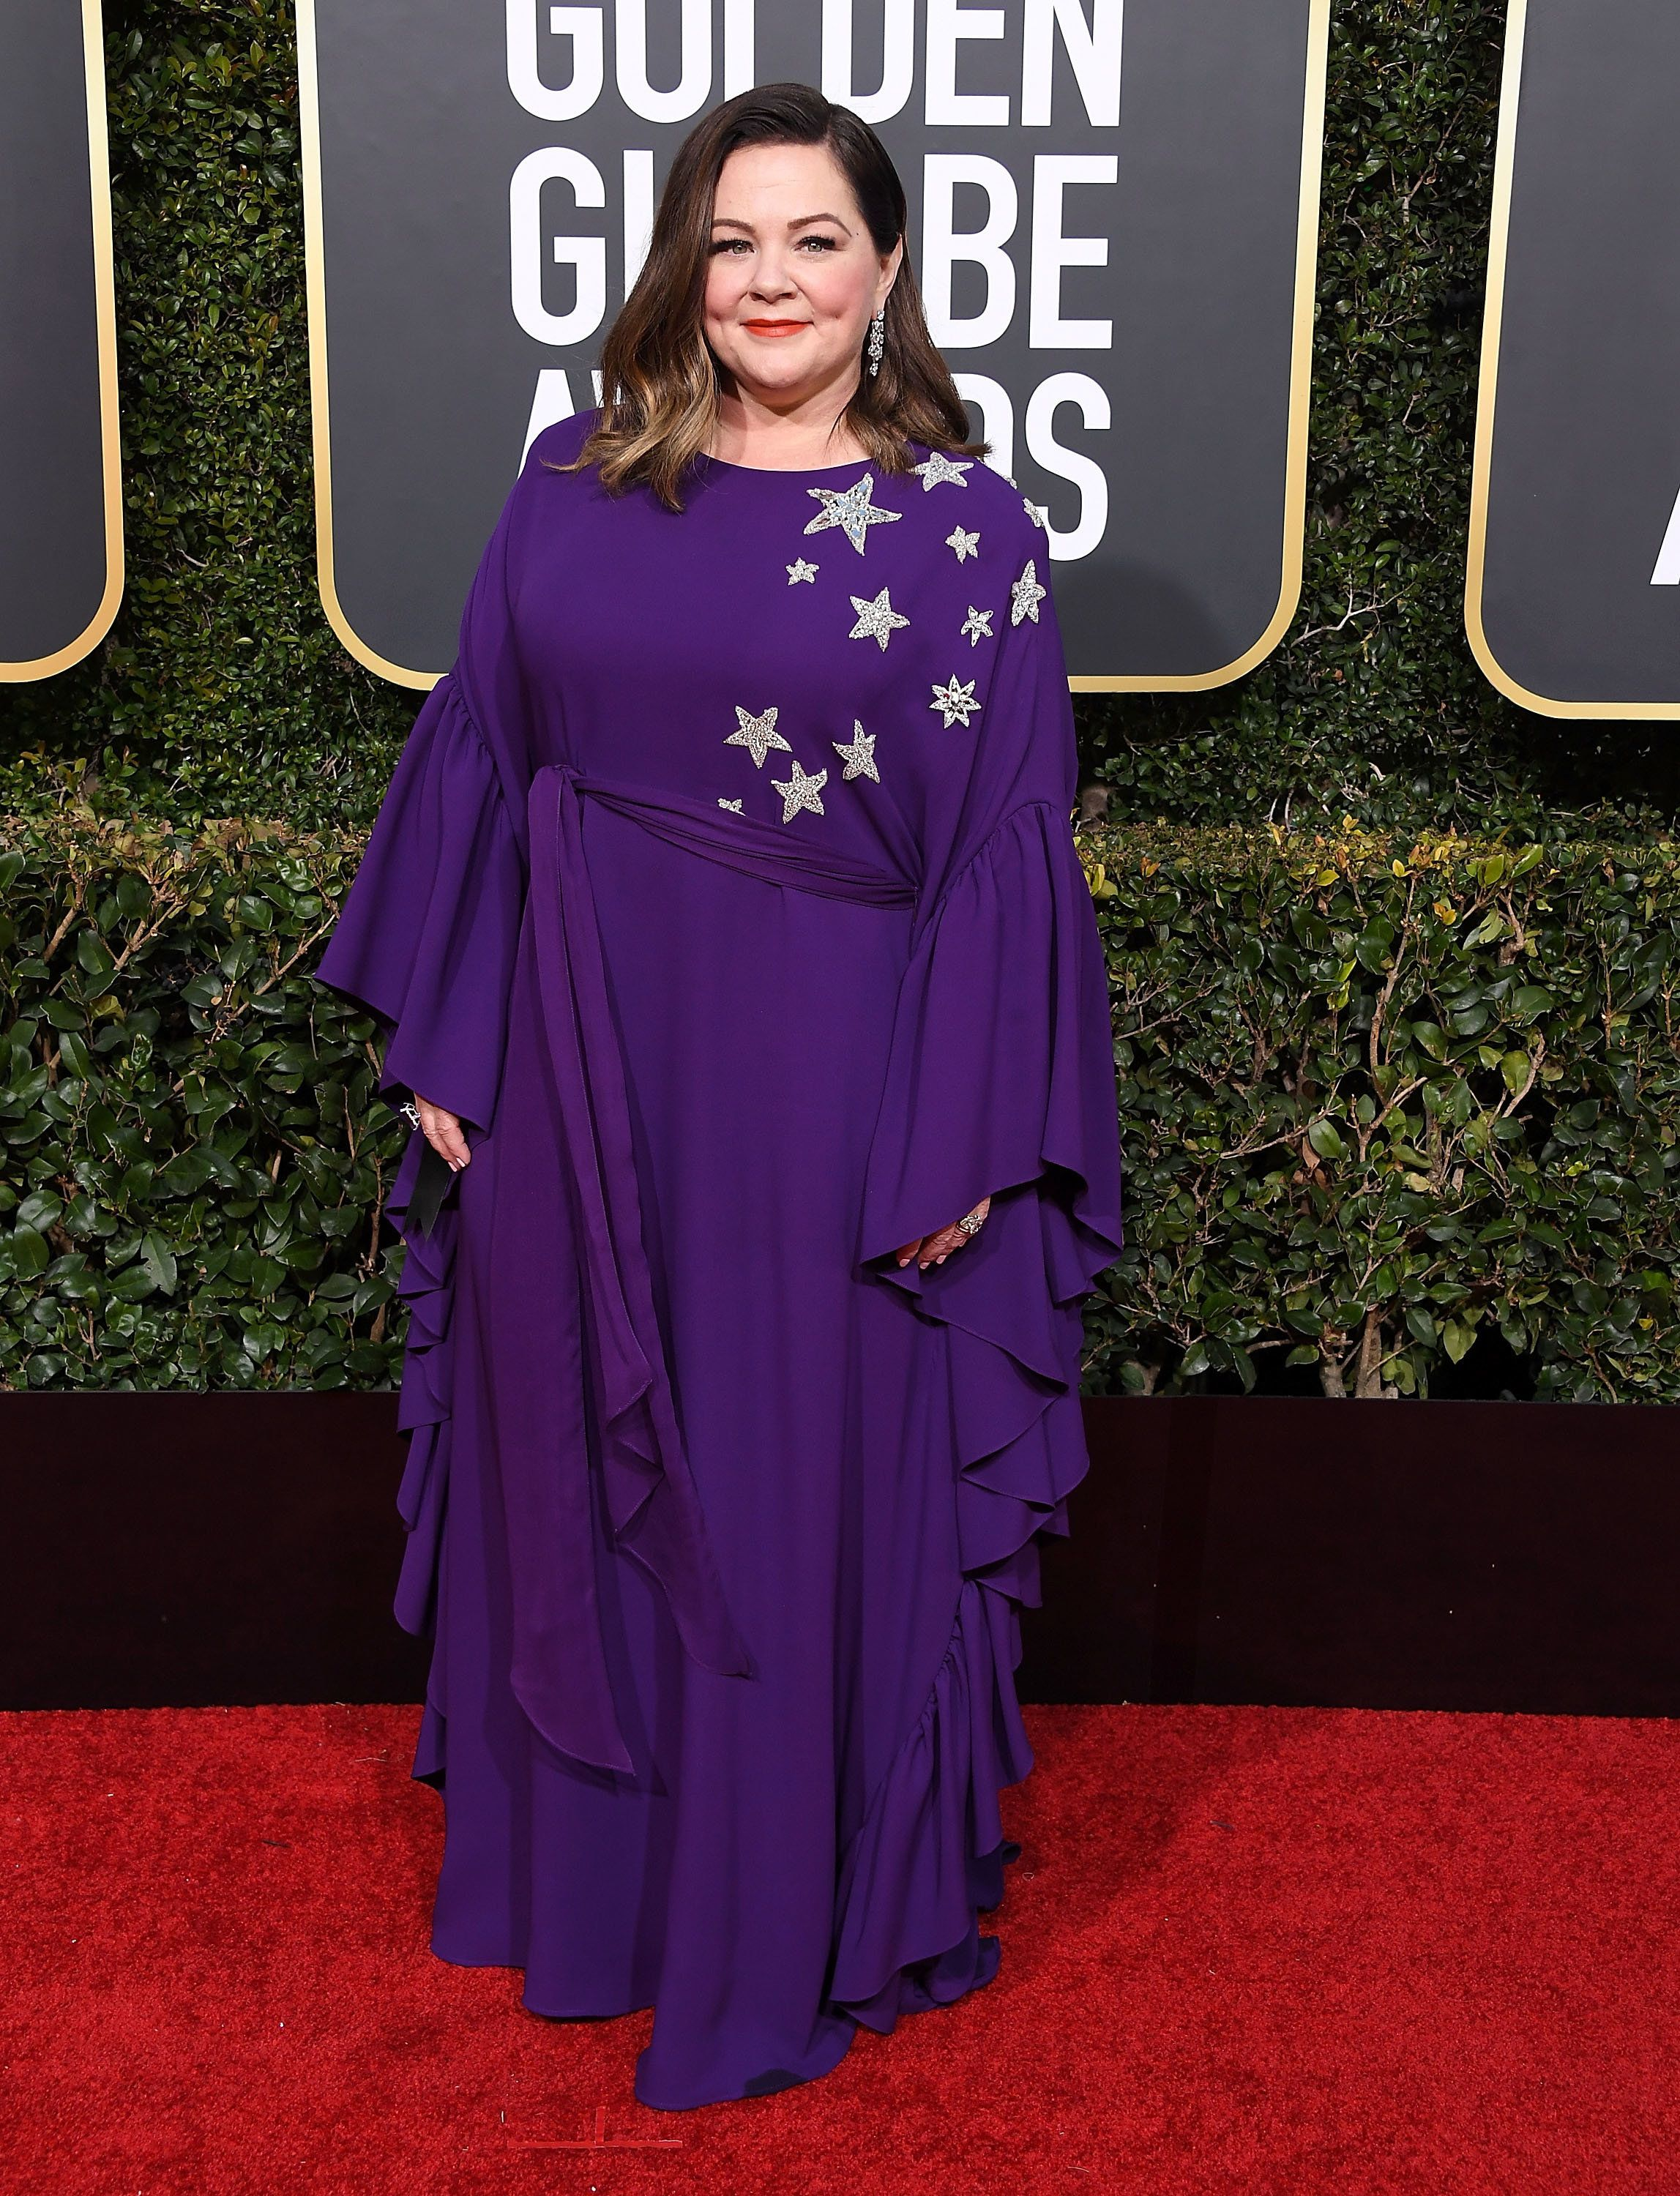 Melissa McCarthy Gave Out 30 Ham And Cheese Sandwiches At The 2019 Golden